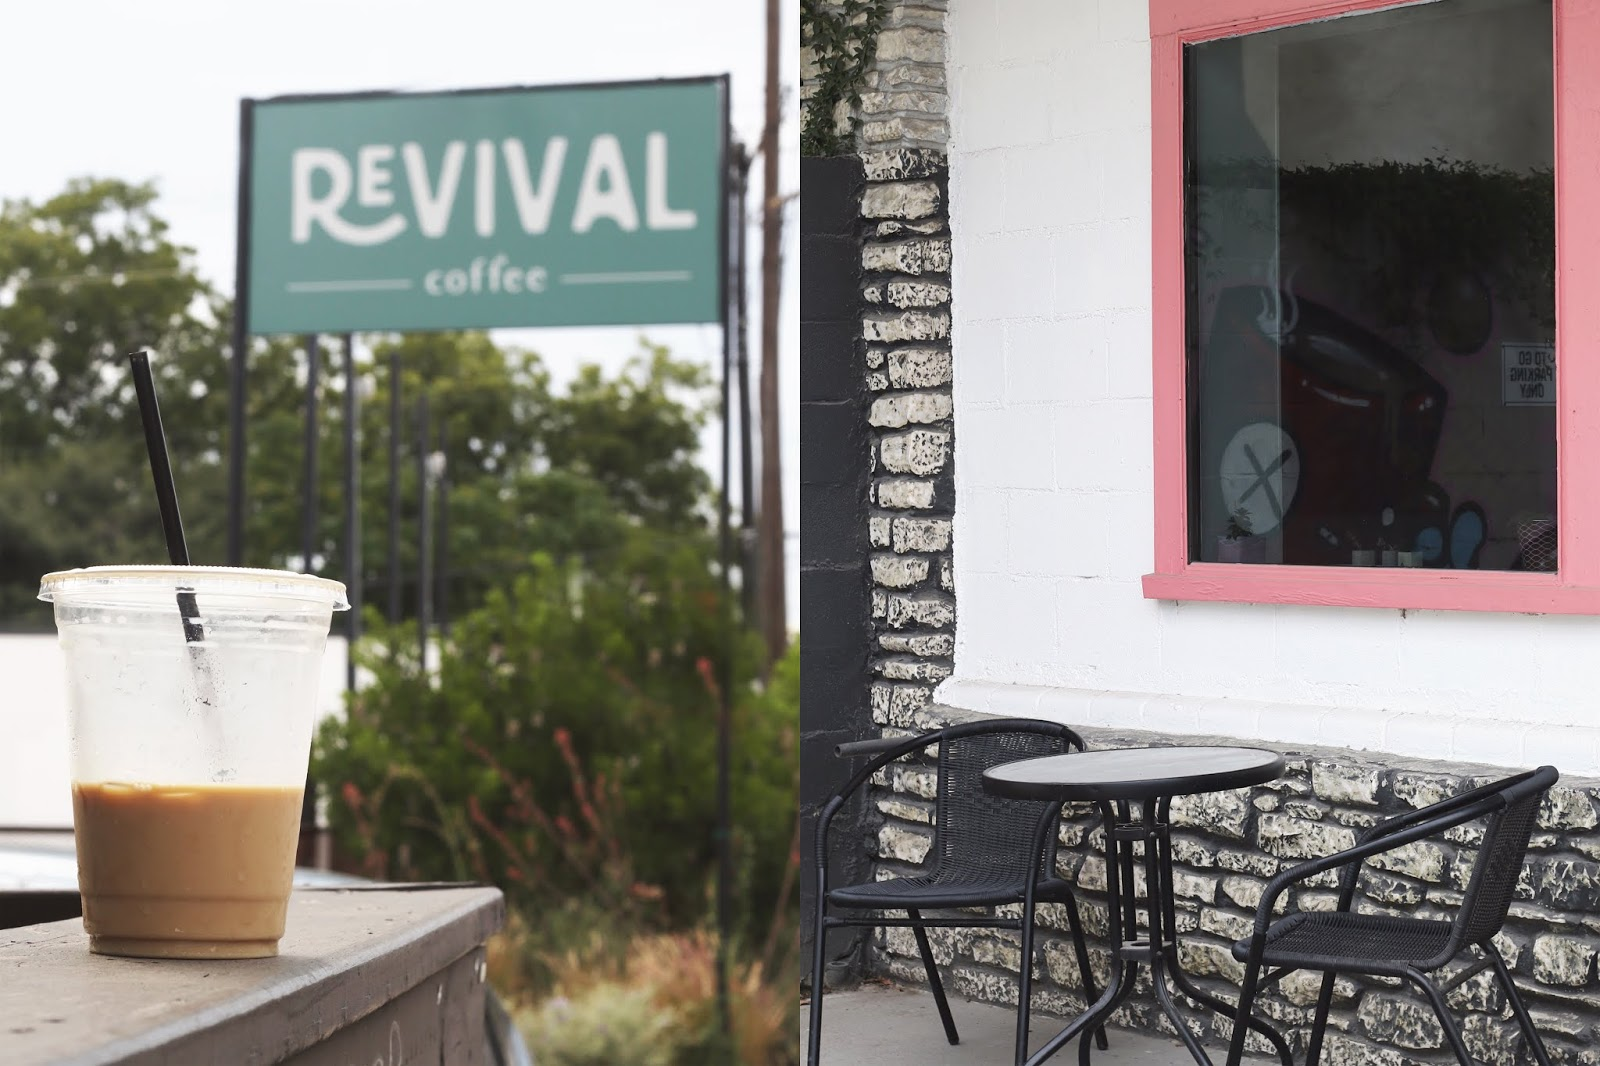 Revival Coffee Austin, Iced Coffee, Cozy Coffee Shop, Coffee Shops Vibe